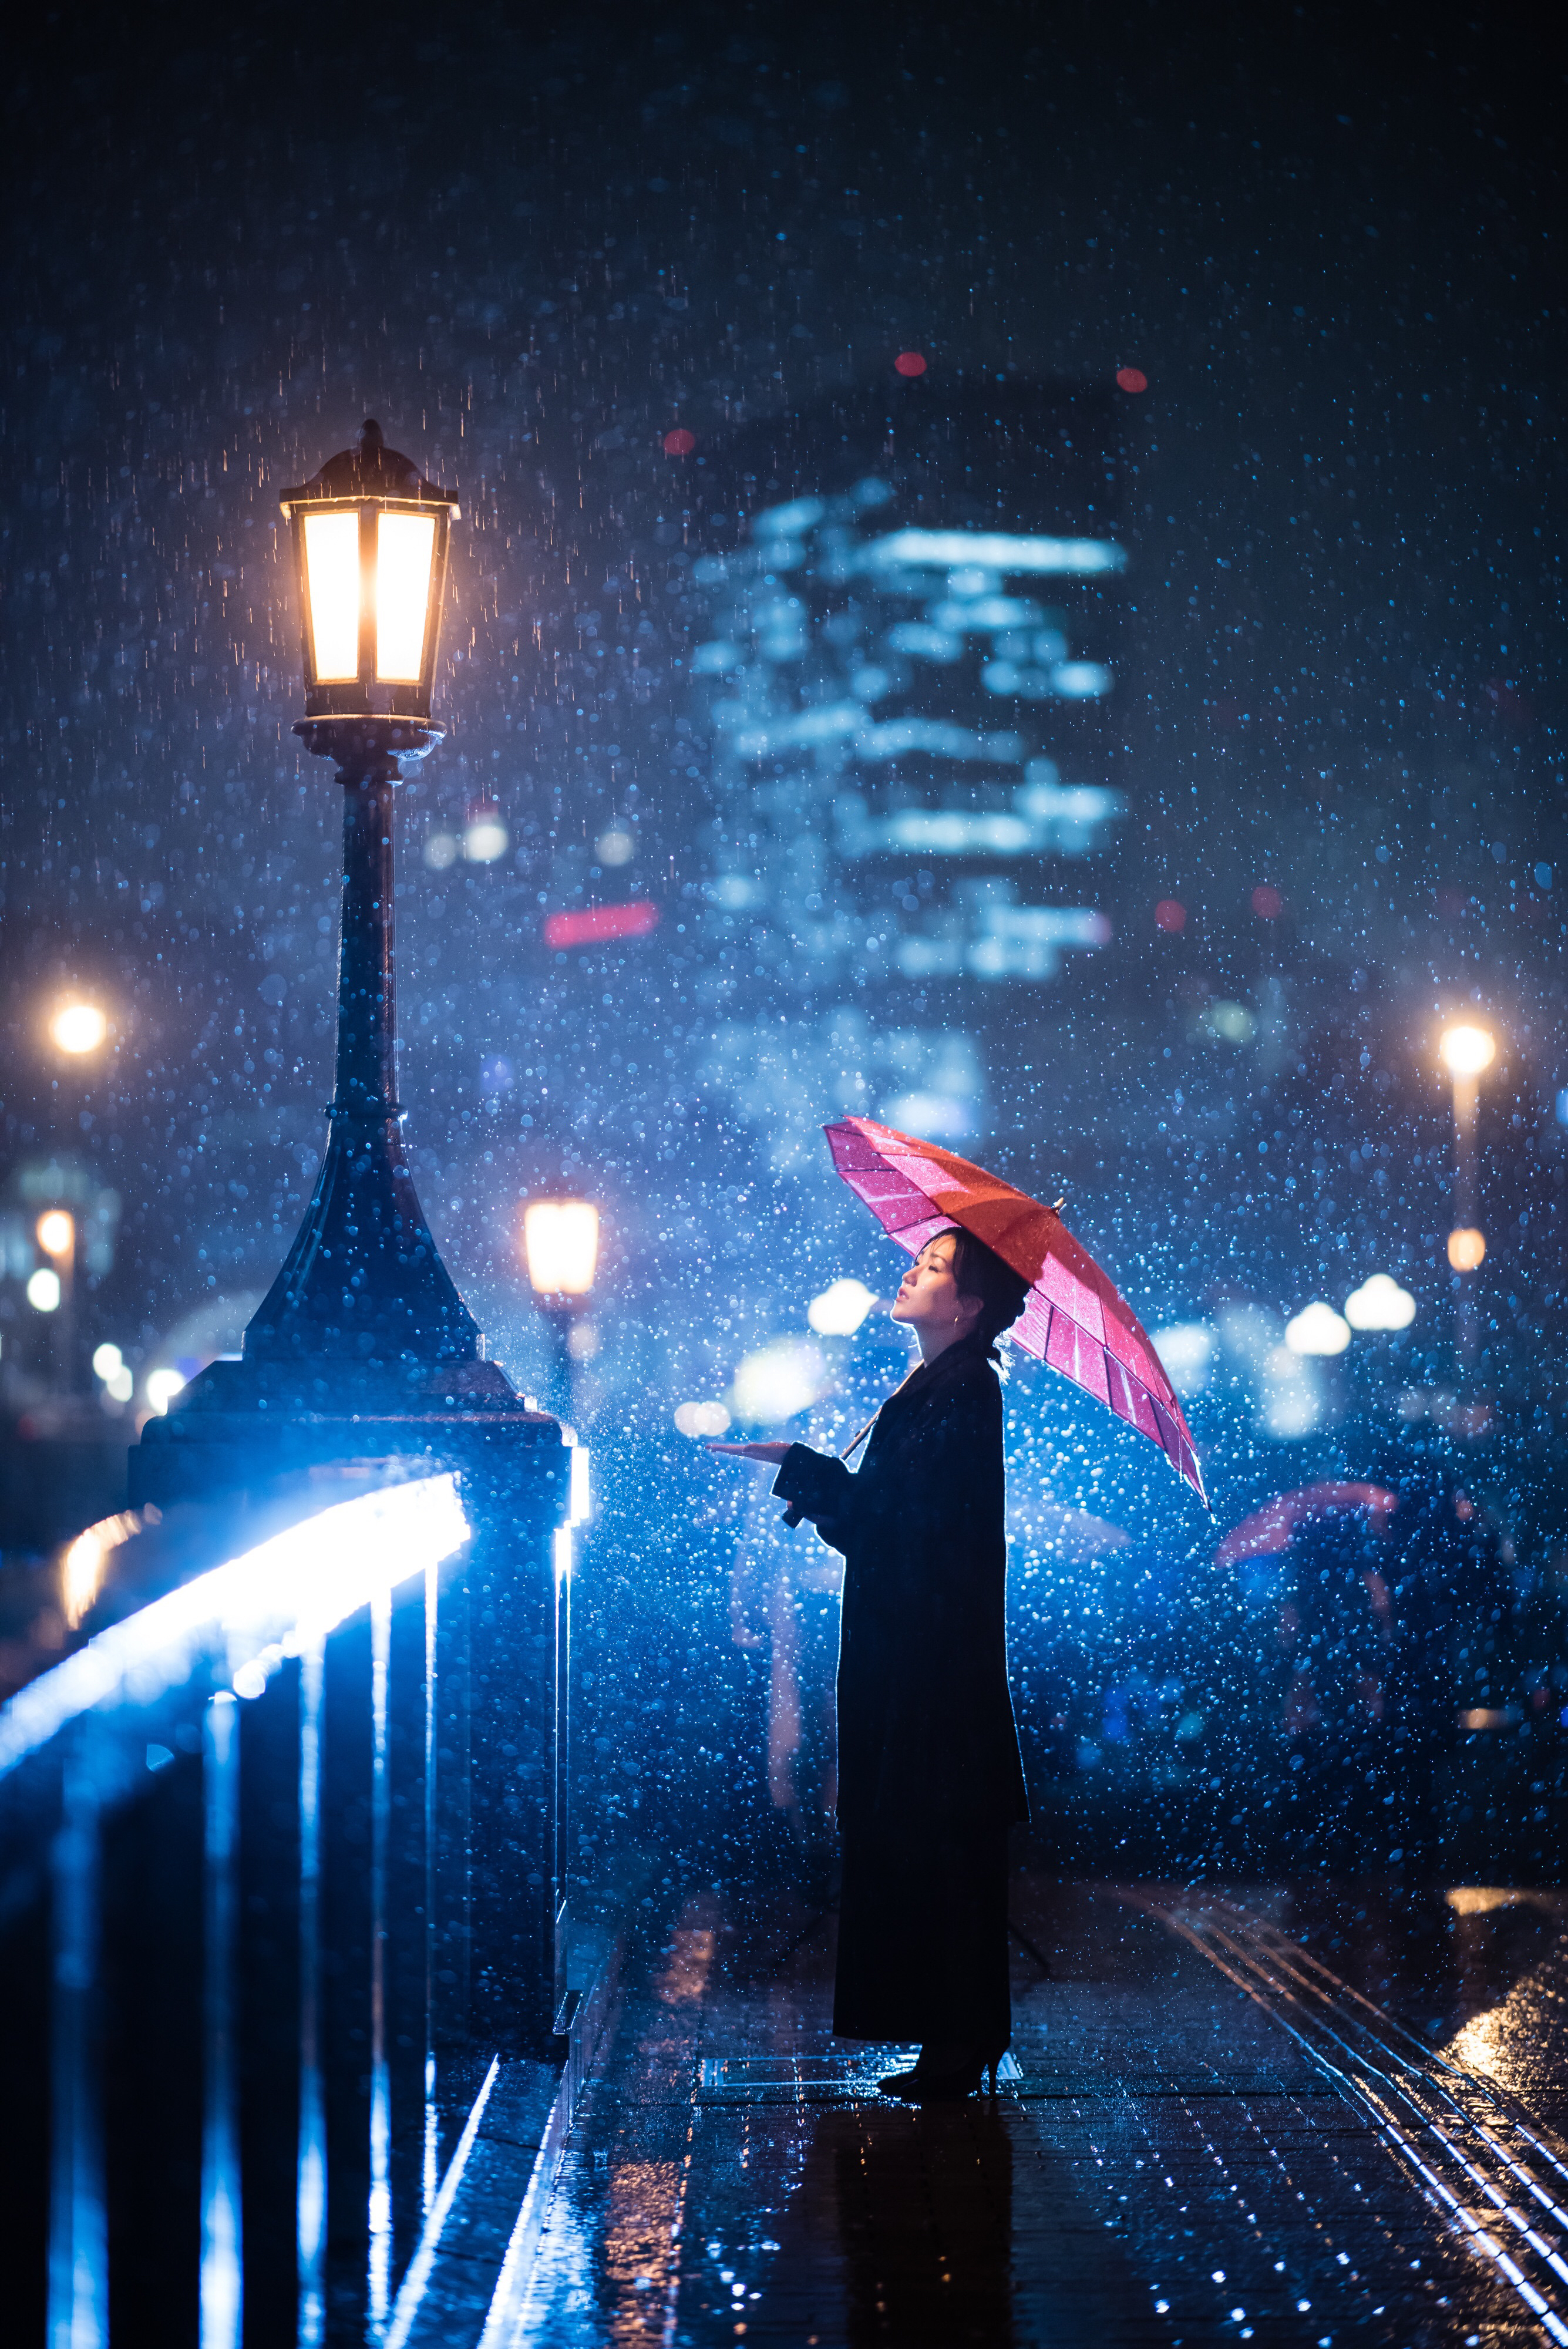 Woman Using Umbrella Standing Near Bridge Light Post